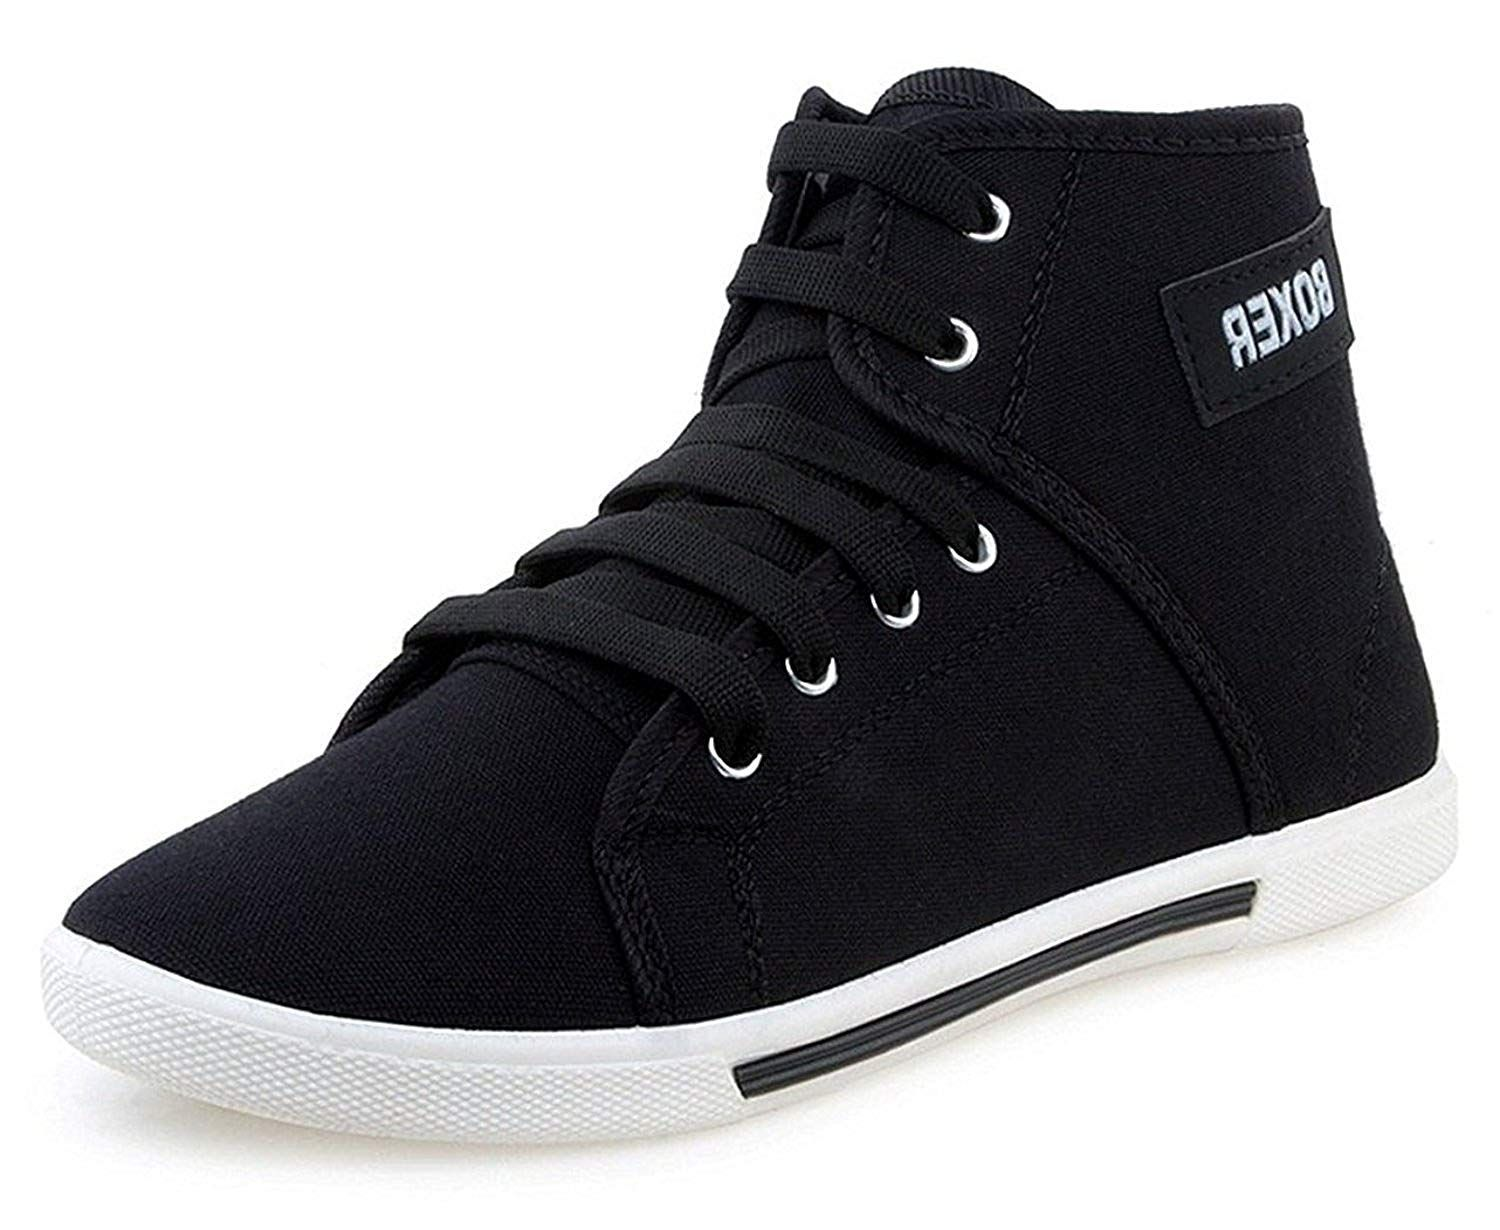 Pin by Future Fashion on Best Selling Shoes in Amazon  596ca1c8a